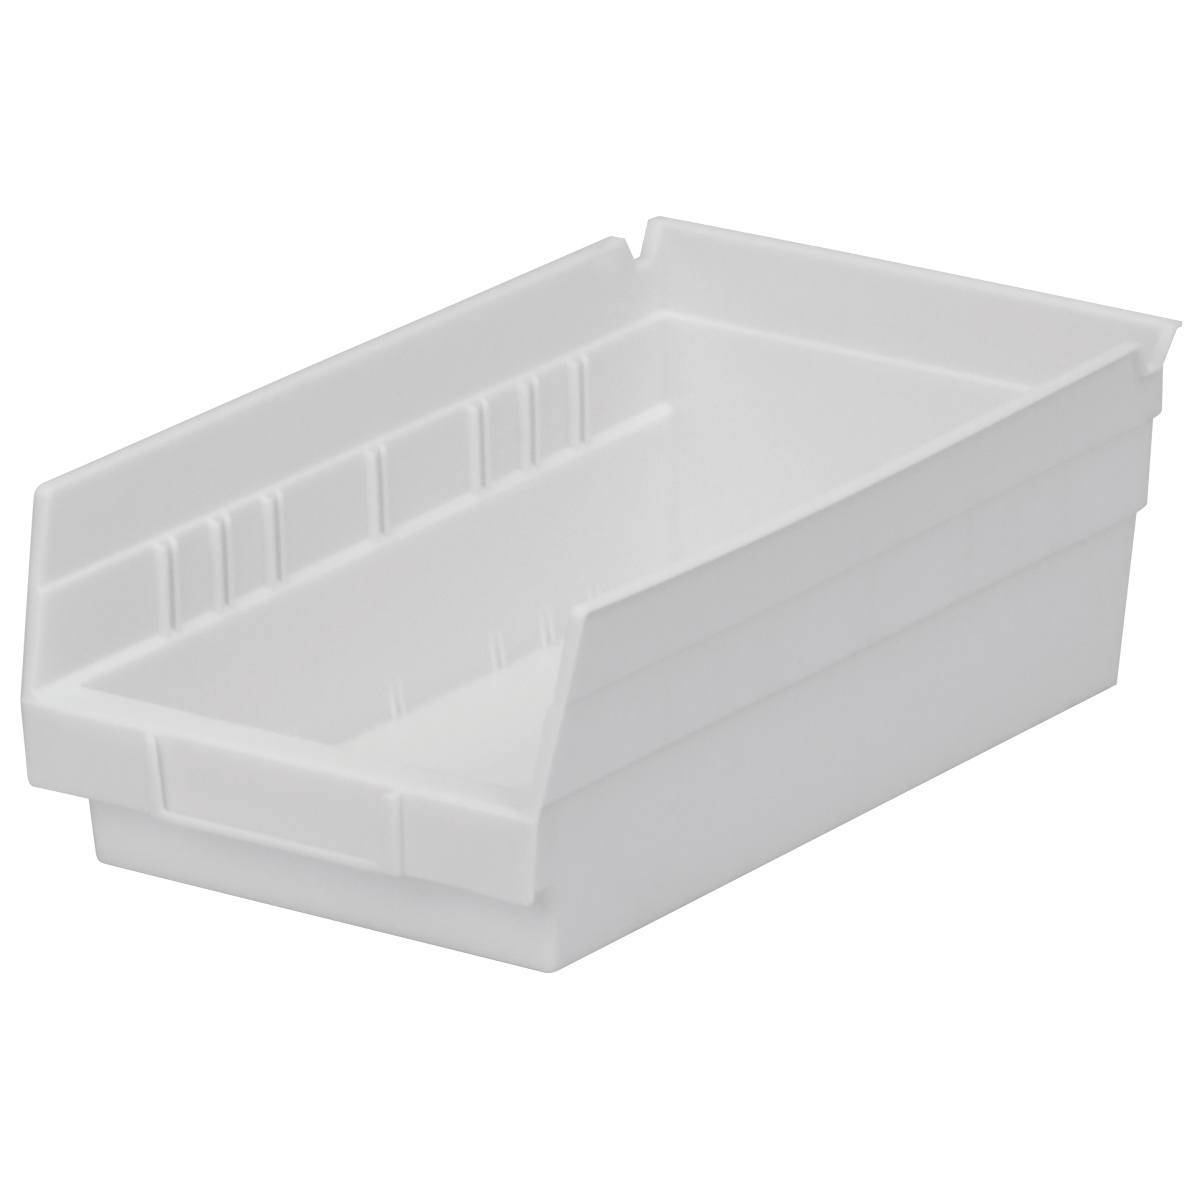 Shelf Bin 11-5/8 x 6-5/8 x 4, White (30130WHITE).  This item sold in carton quantities of 12.